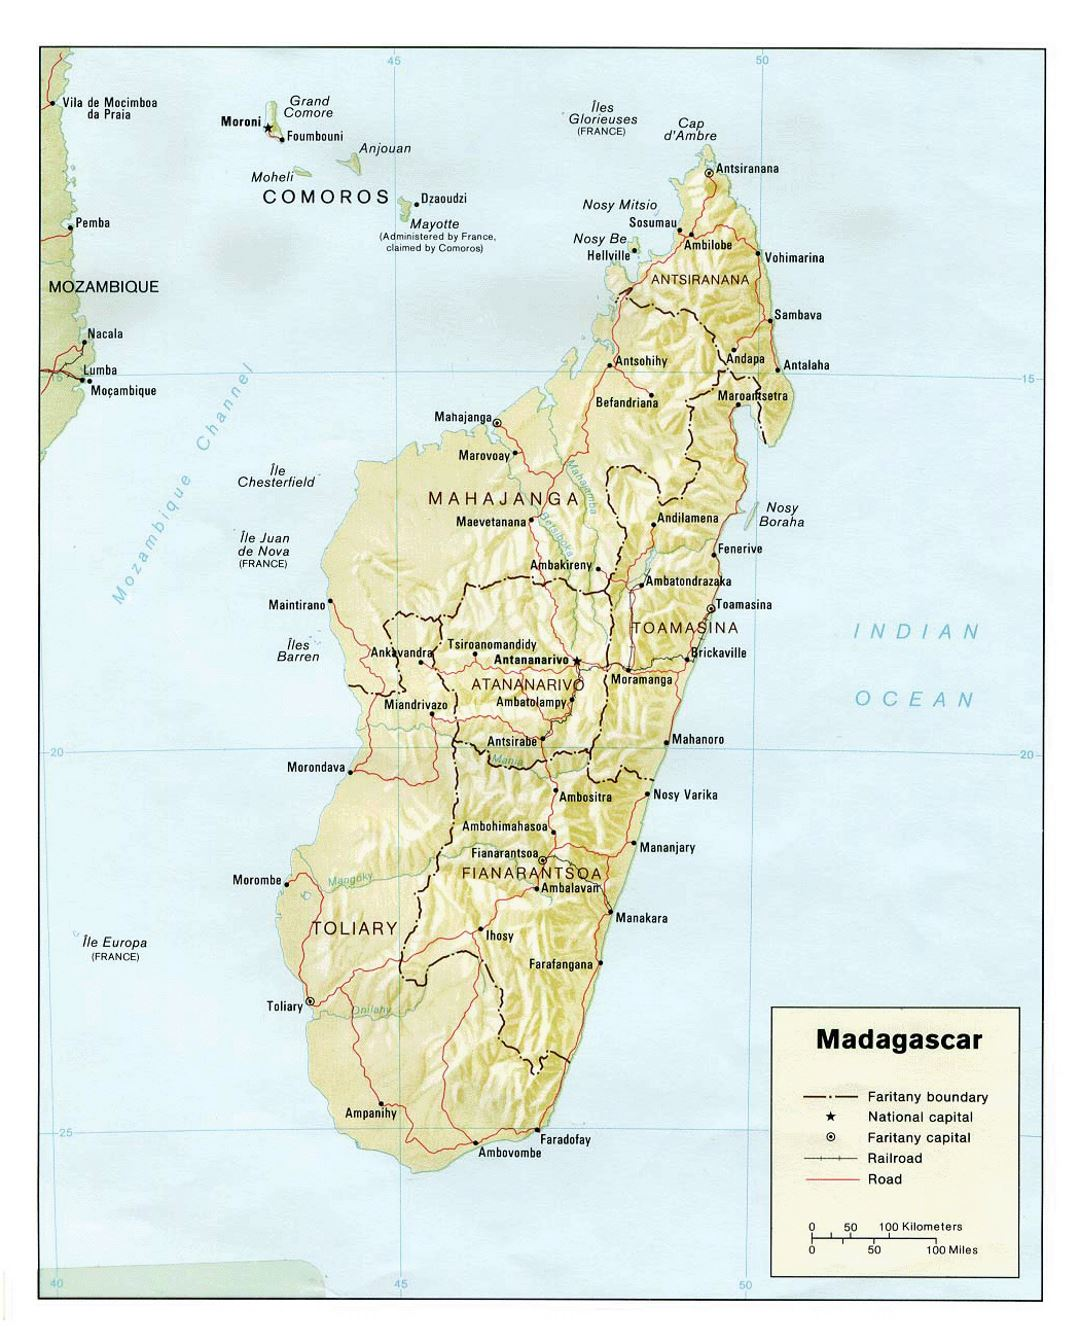 Detailed political and administrative map of Madagascar with relief, roads, railroads and major cities - 1981